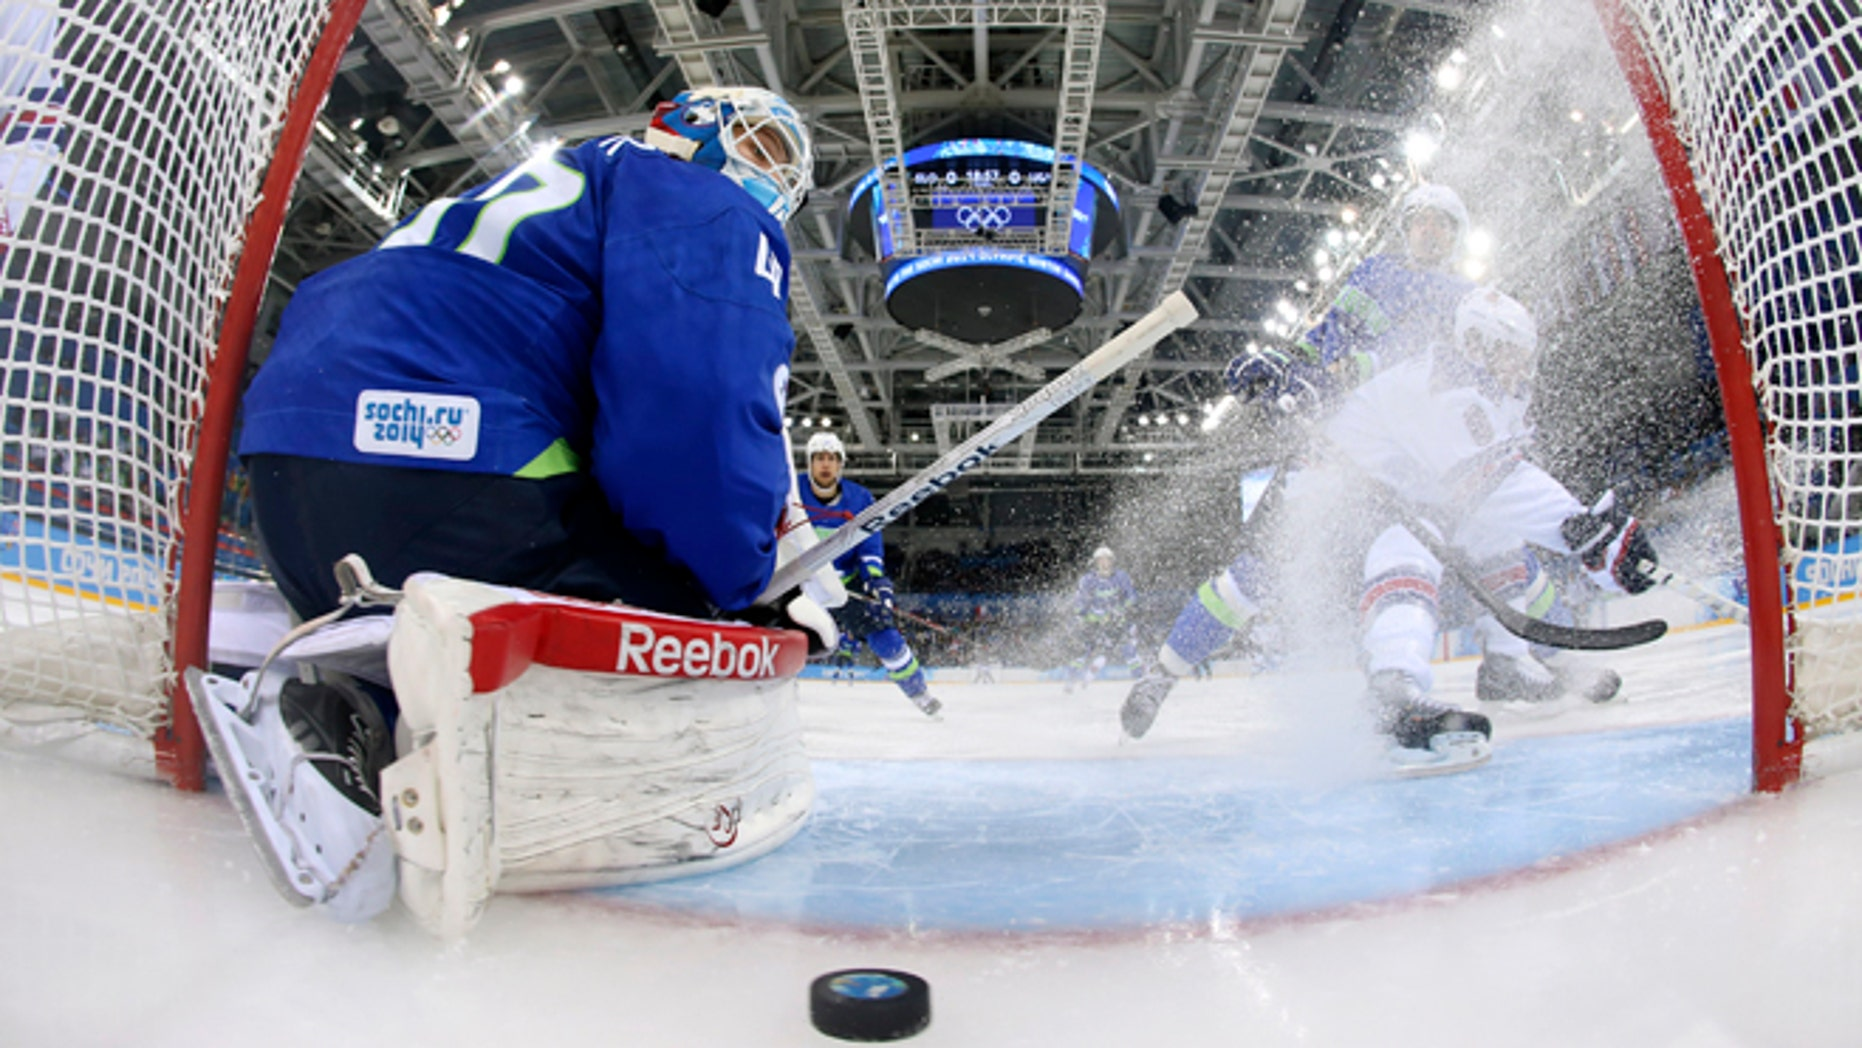 Feb. 16, 2014: Slovenia goaltender Luka Gracnar looks back at the puck after USA forward Phil Kessel scored period of a men's ice hockey game at the 2014 Winter Olympics, Sunday, Feb. 16, 2014, in Sochi, Russia.